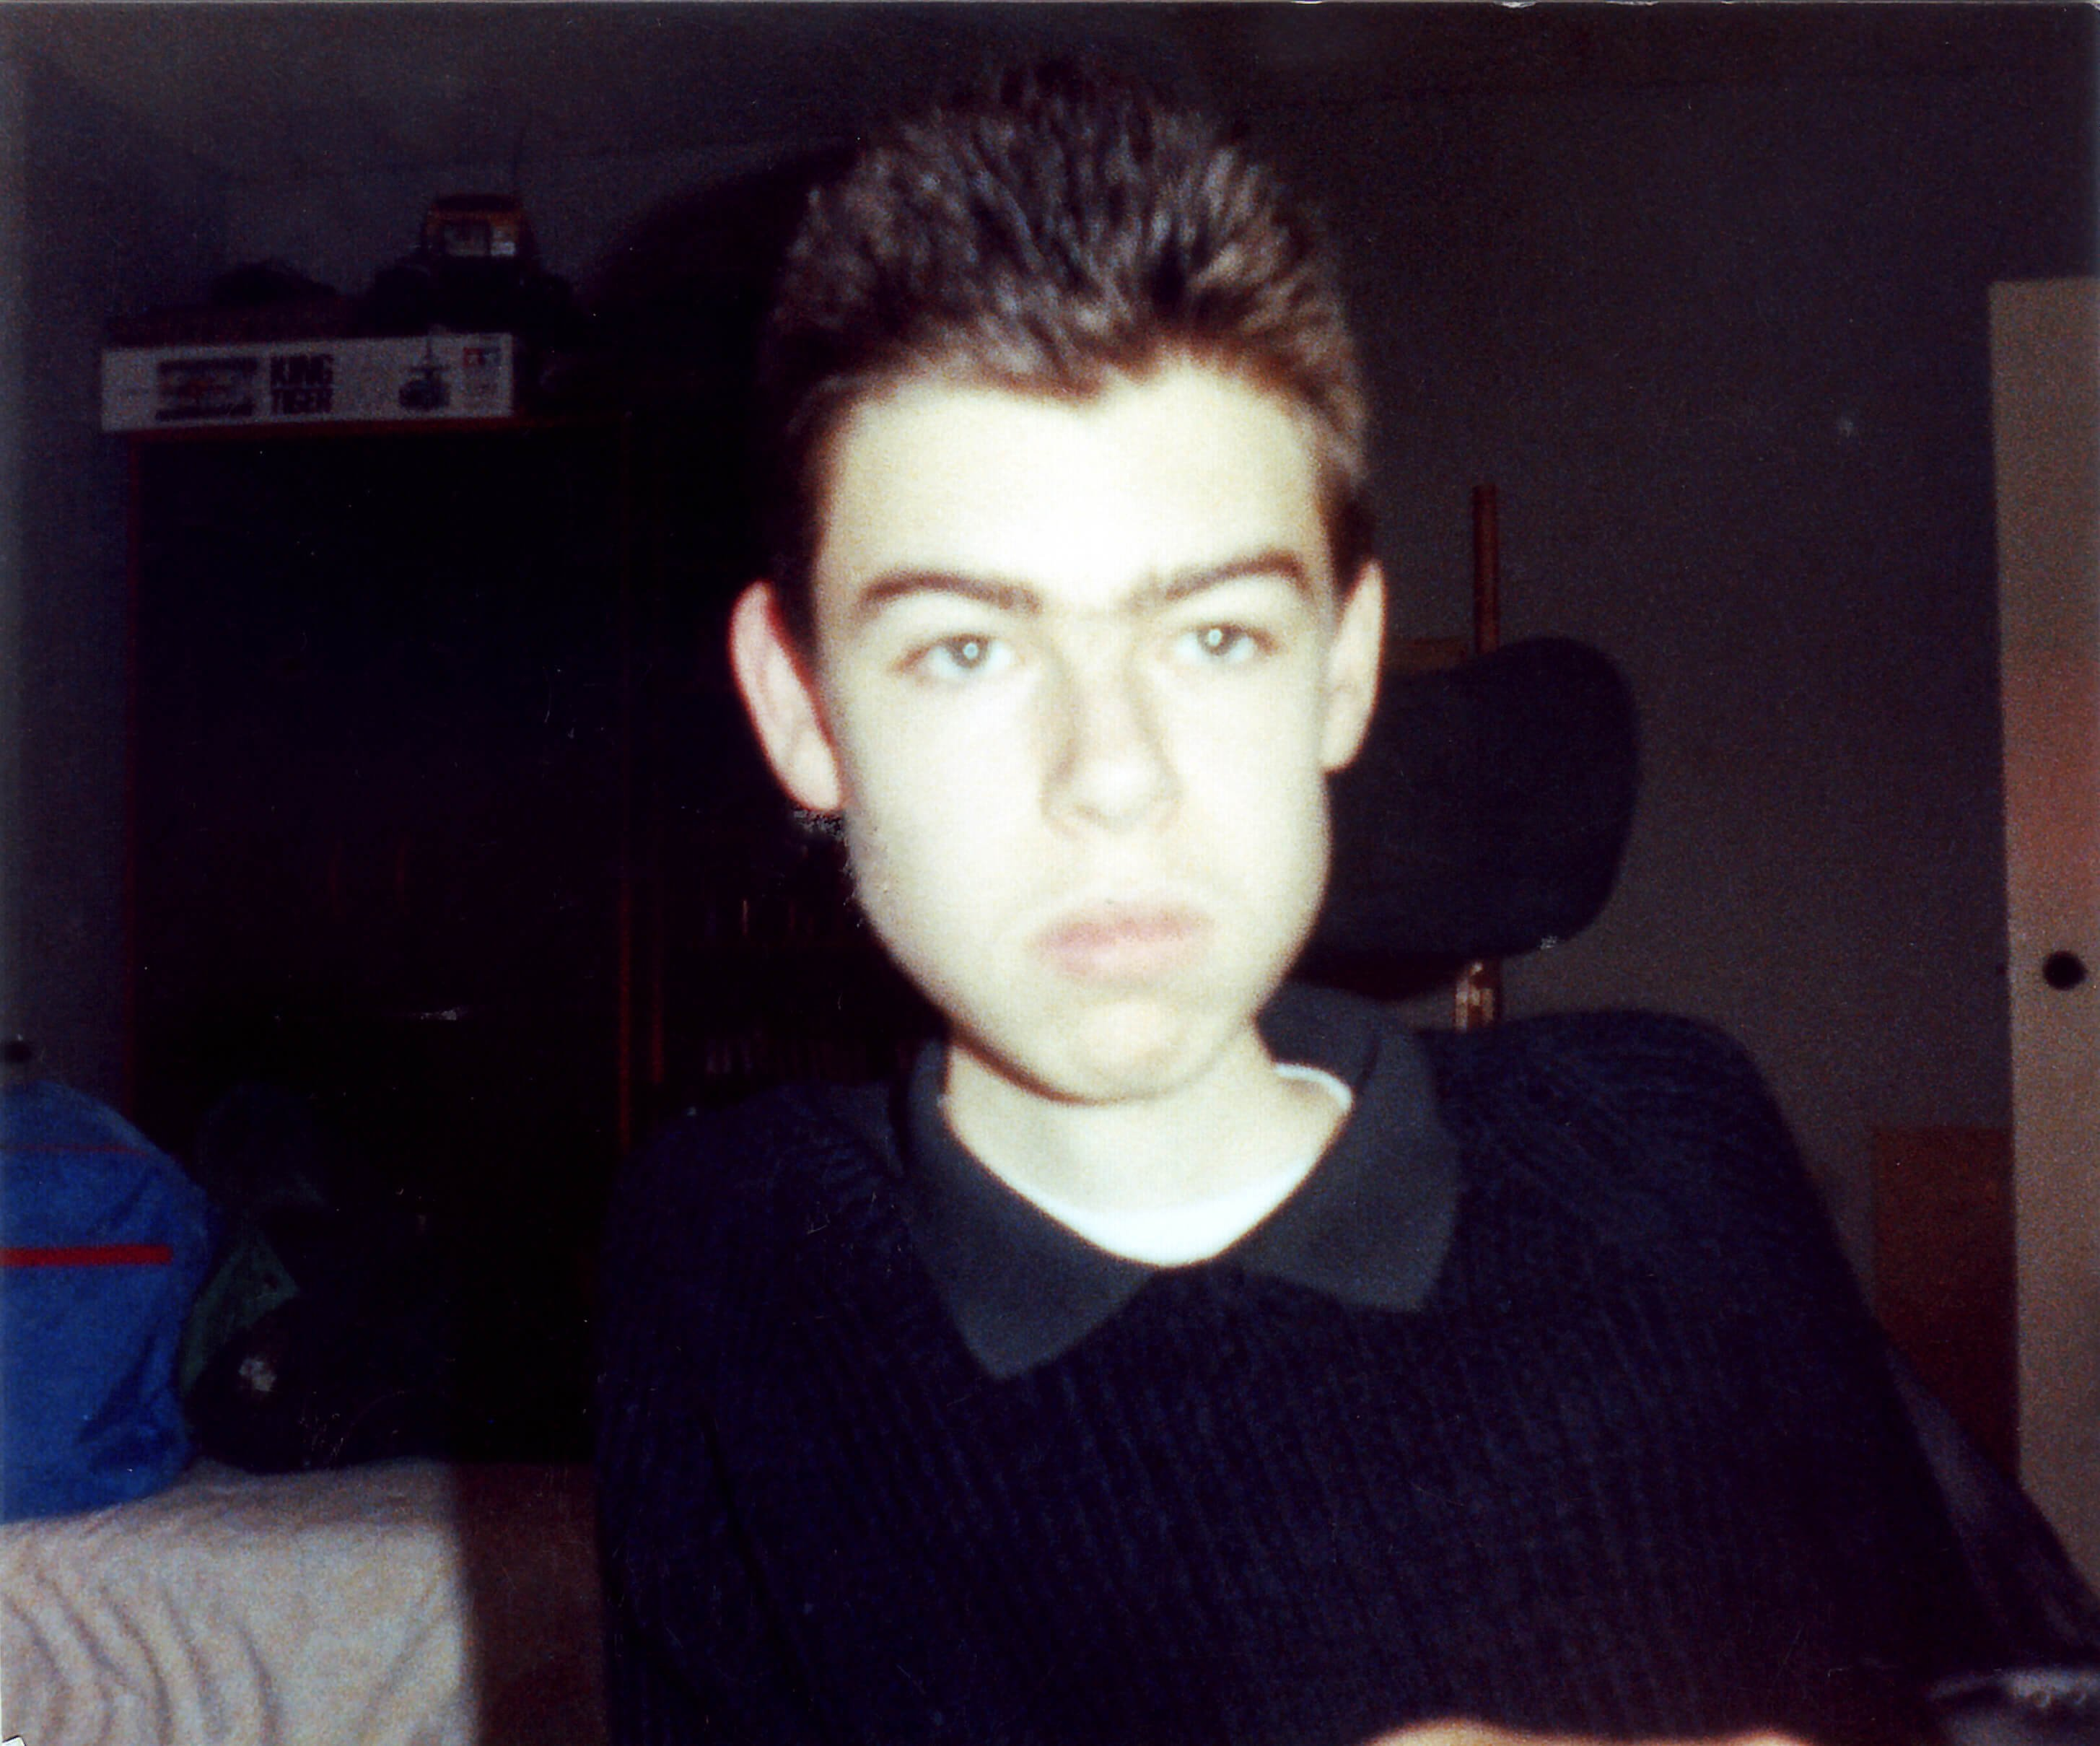 A picture of me, Daniel Baker, as a teenager in a black jumper